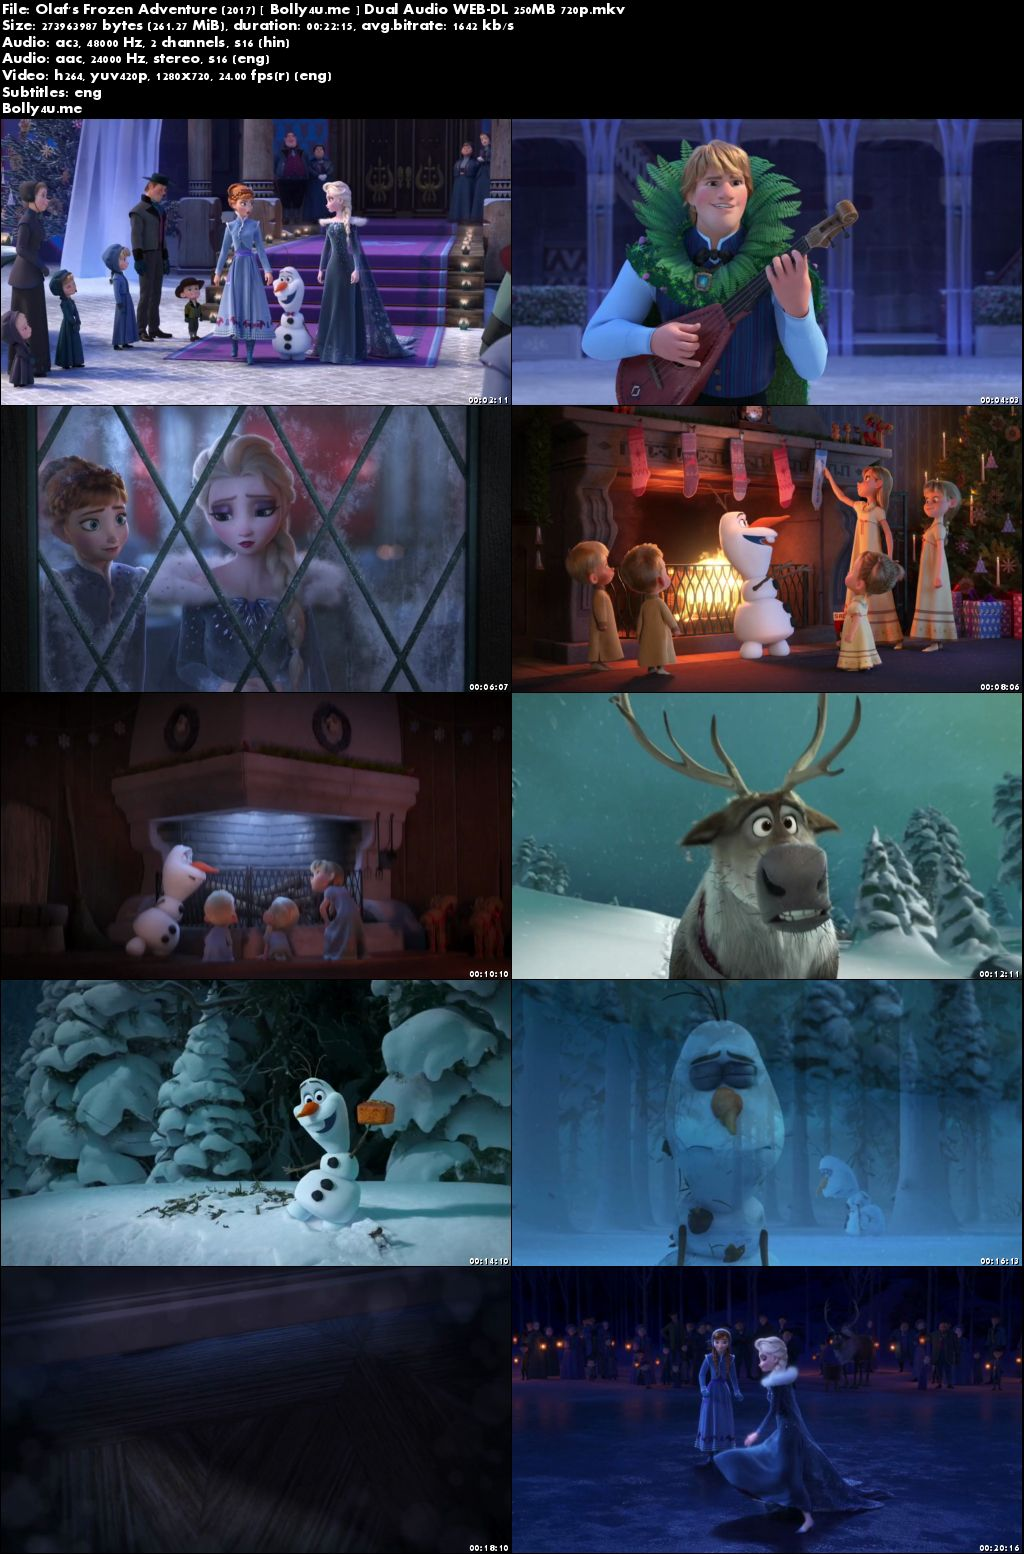 Olaf's Frozen Adventure 2017 WEB-DL 250MB Hindi Dual Audio 720p Download